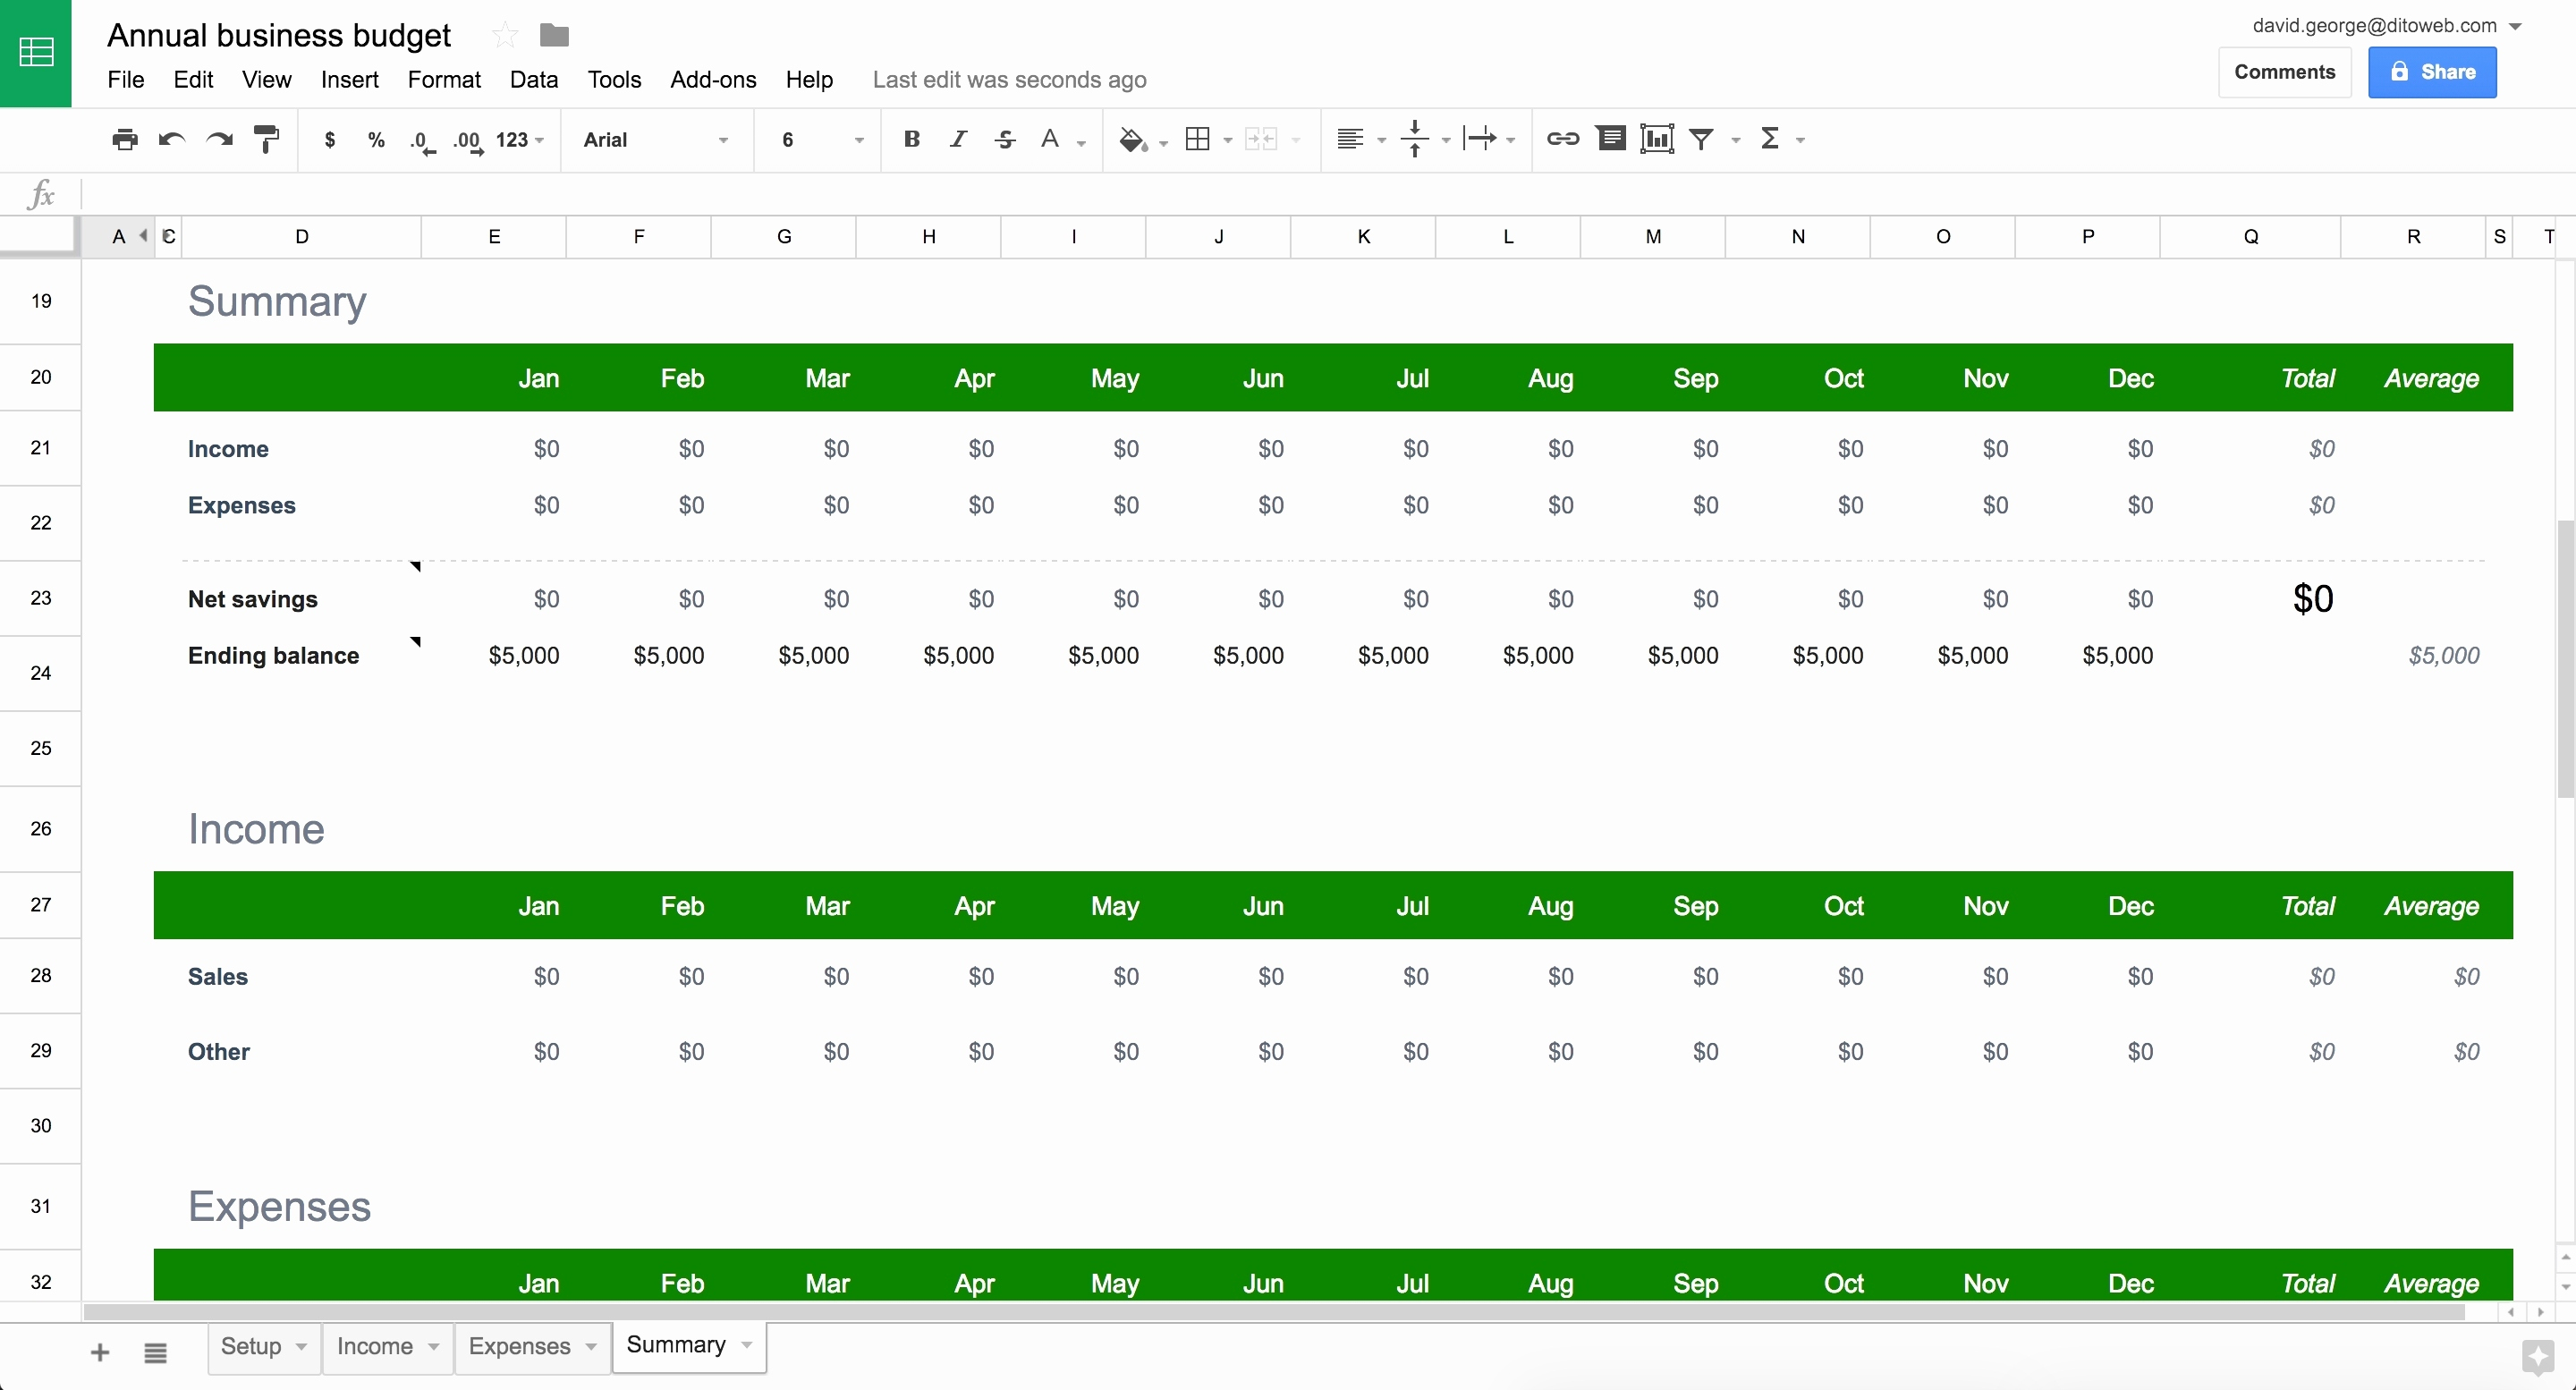 Wedding Budget Spreadsheet Google Sheets Intended For Example Of Wedding Budget Spreadsheet Google Docs Cost Template As